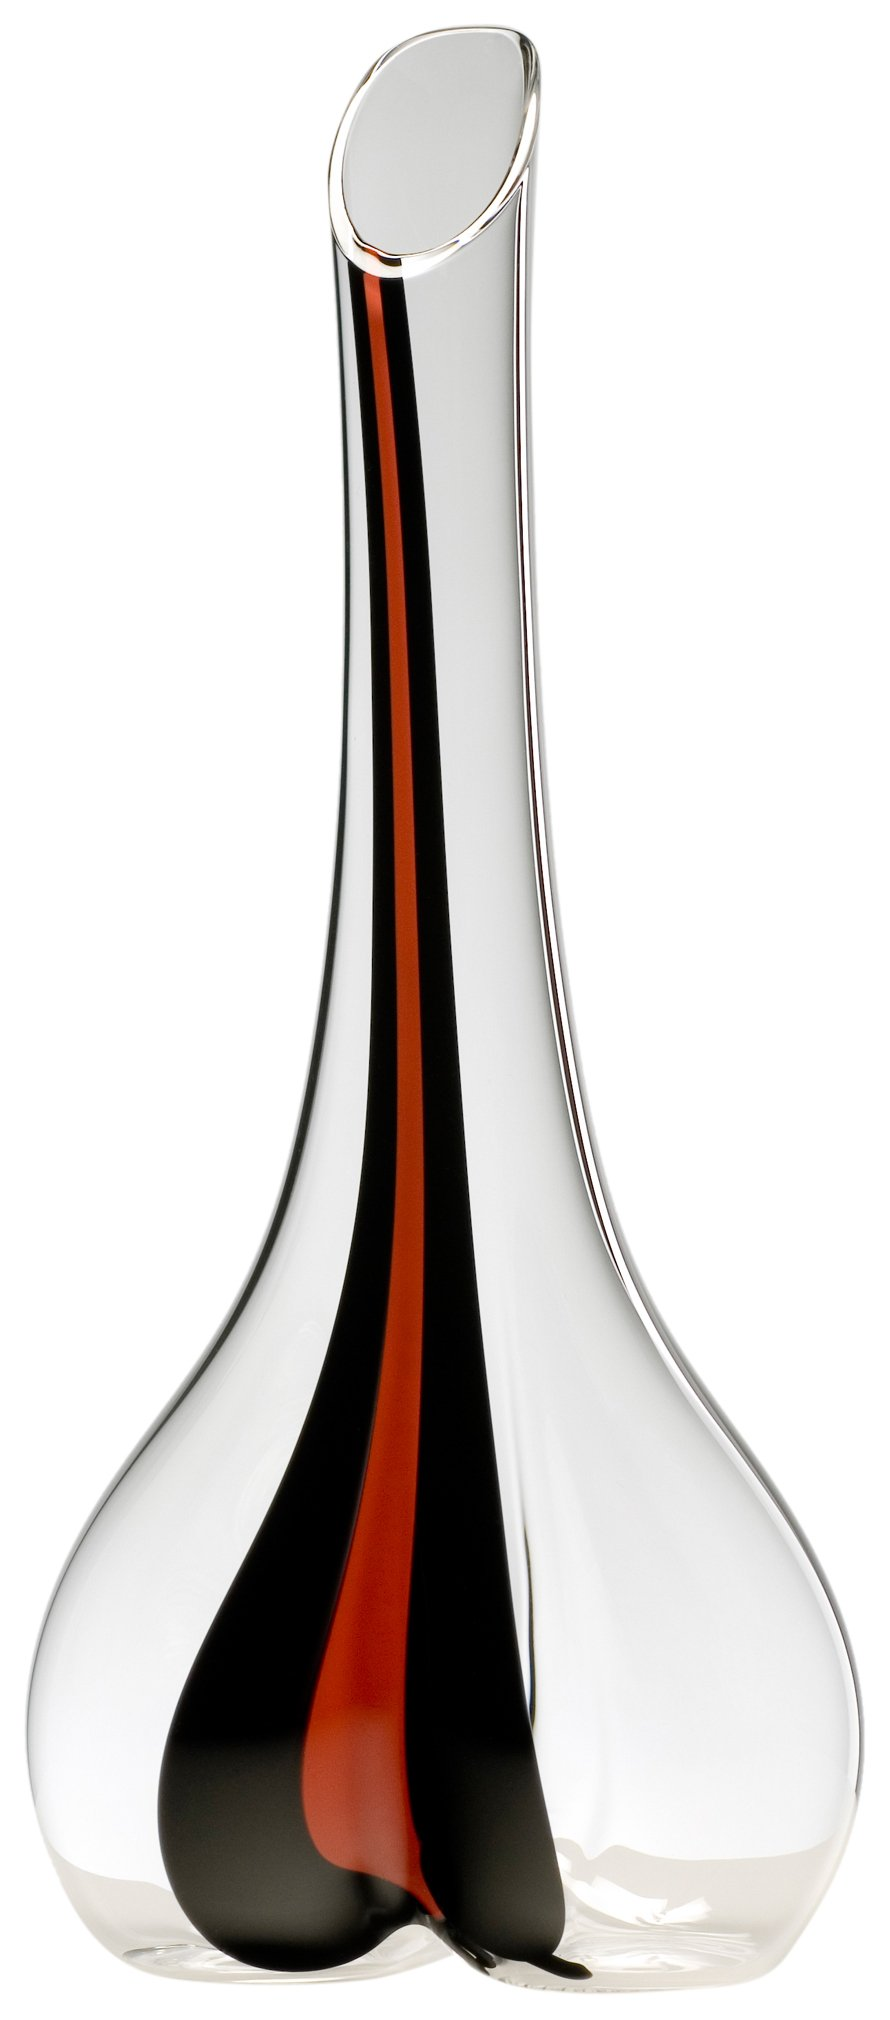 Riedel Decanter Black Tie Smile Red, Carafe for Wine, Glass, 1410 ml, 2009/01 S3